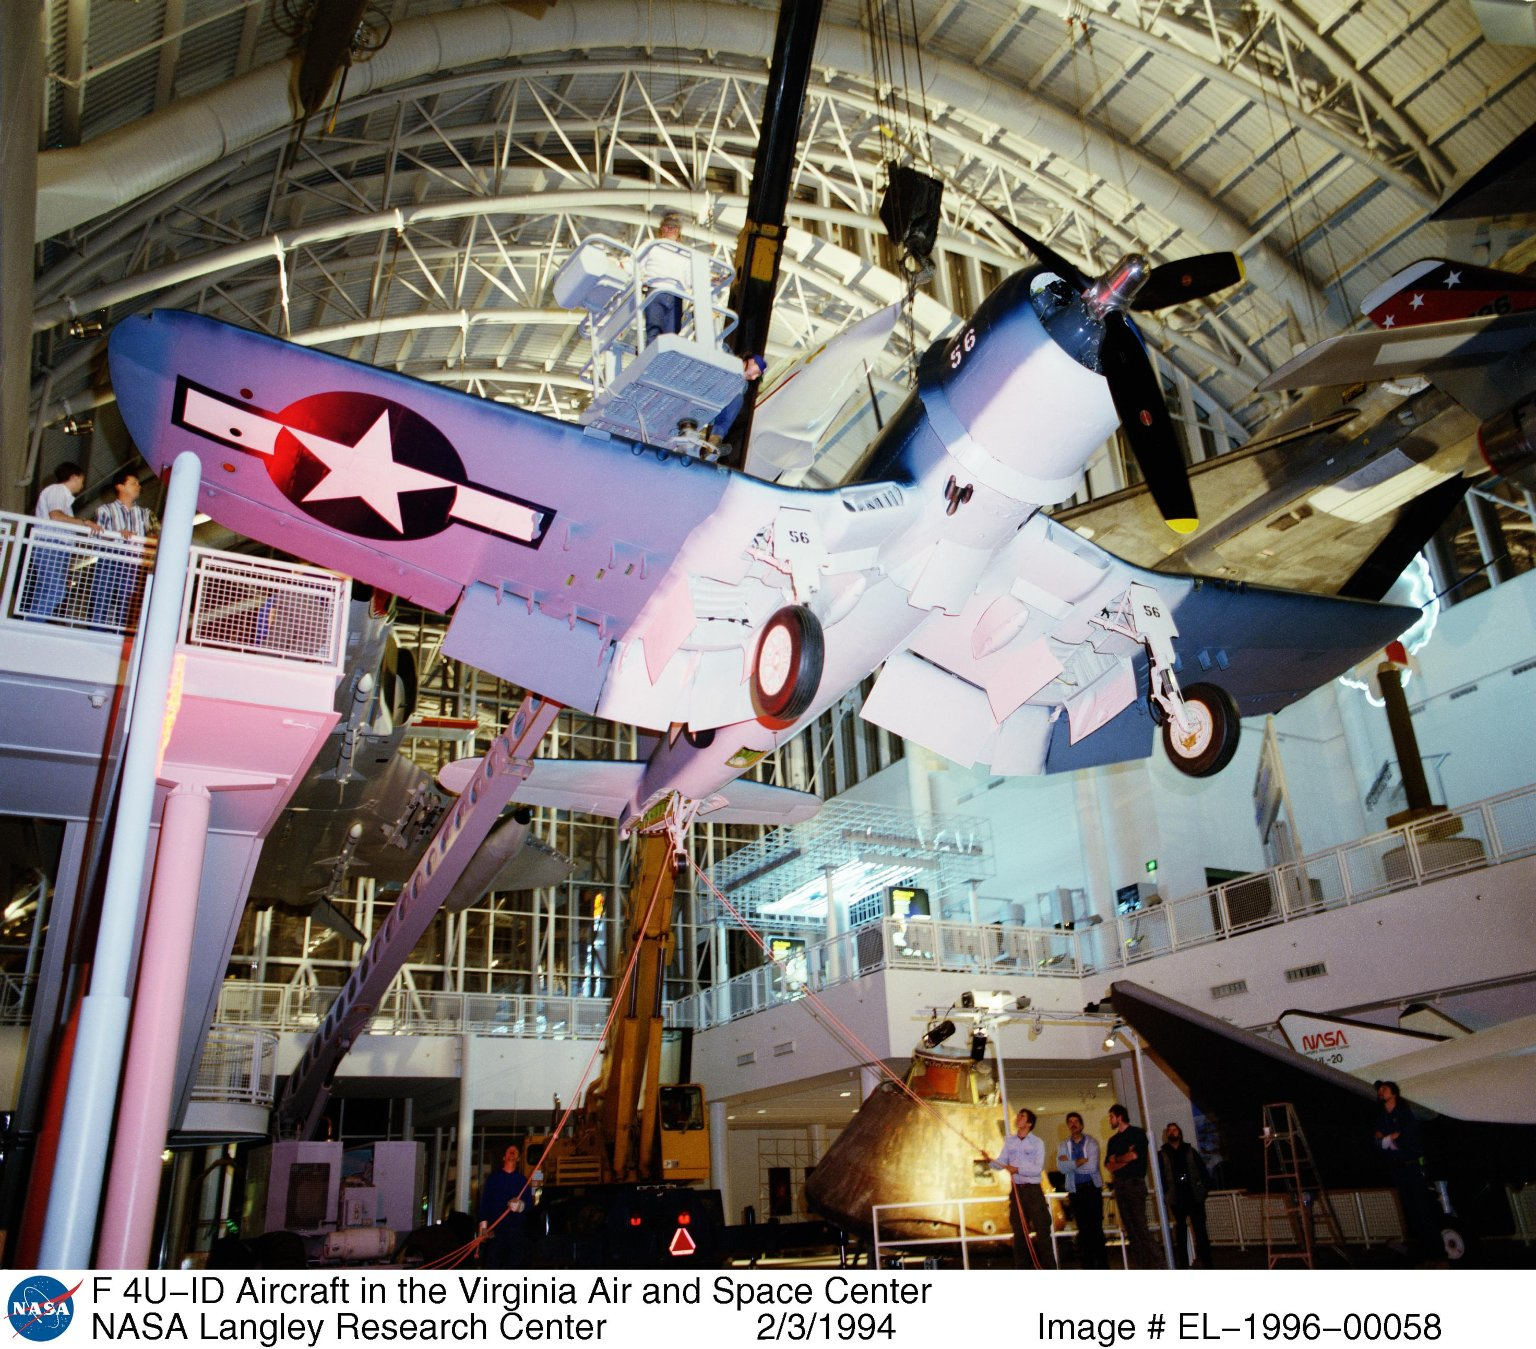 F 4U-ID Aircraft in the Virginia Air and Space Center